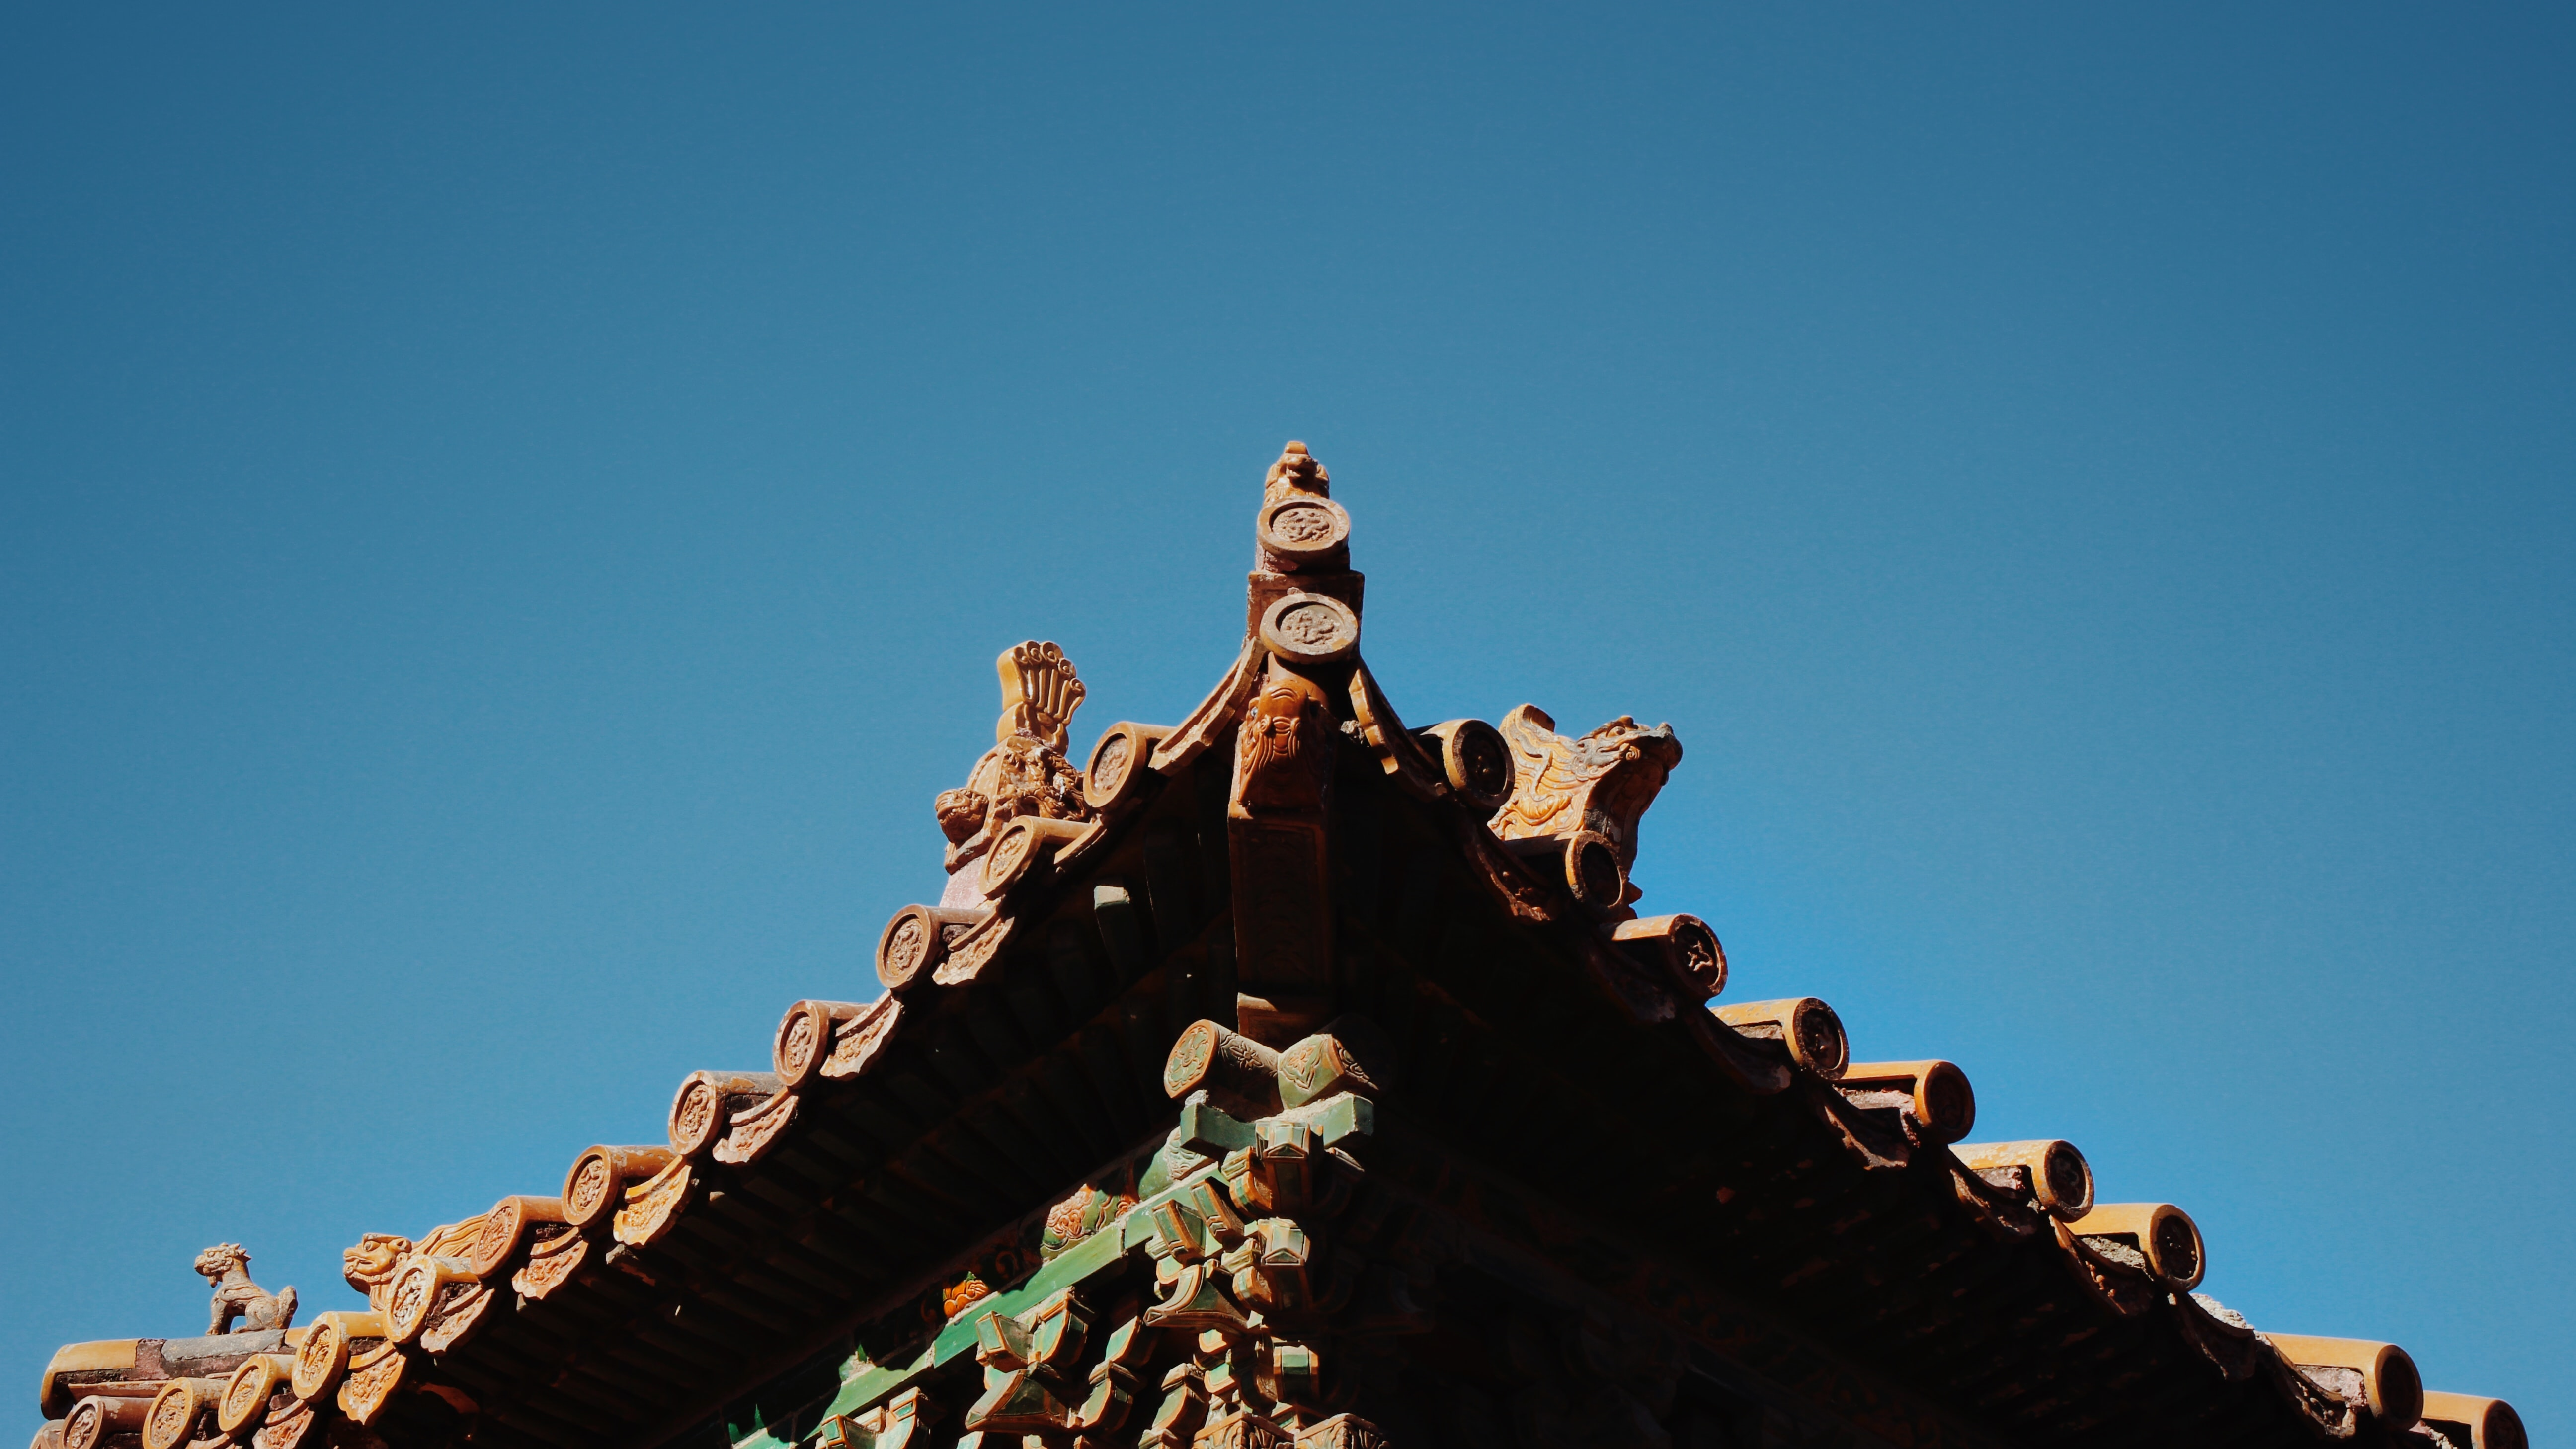 brown roof close-up phot